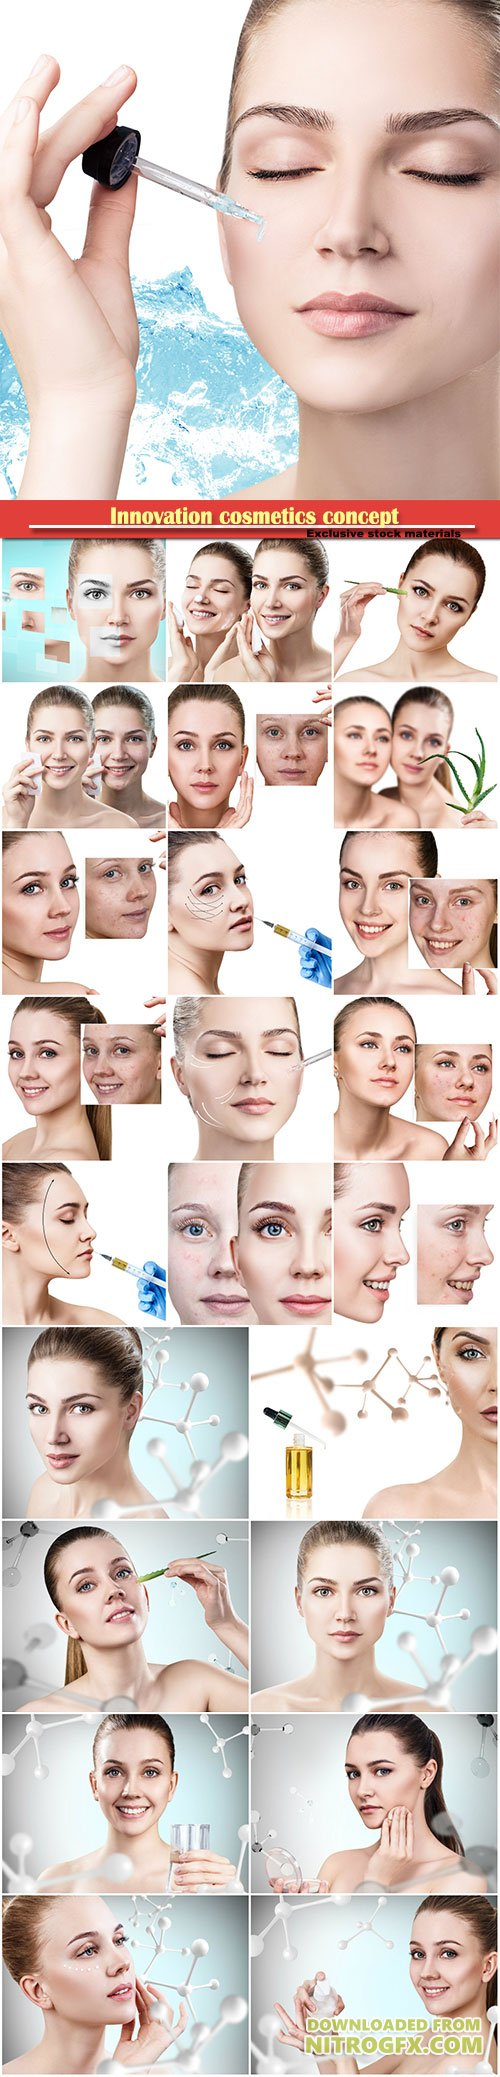 Innovation cosmetics concept, young woman cleanses skin